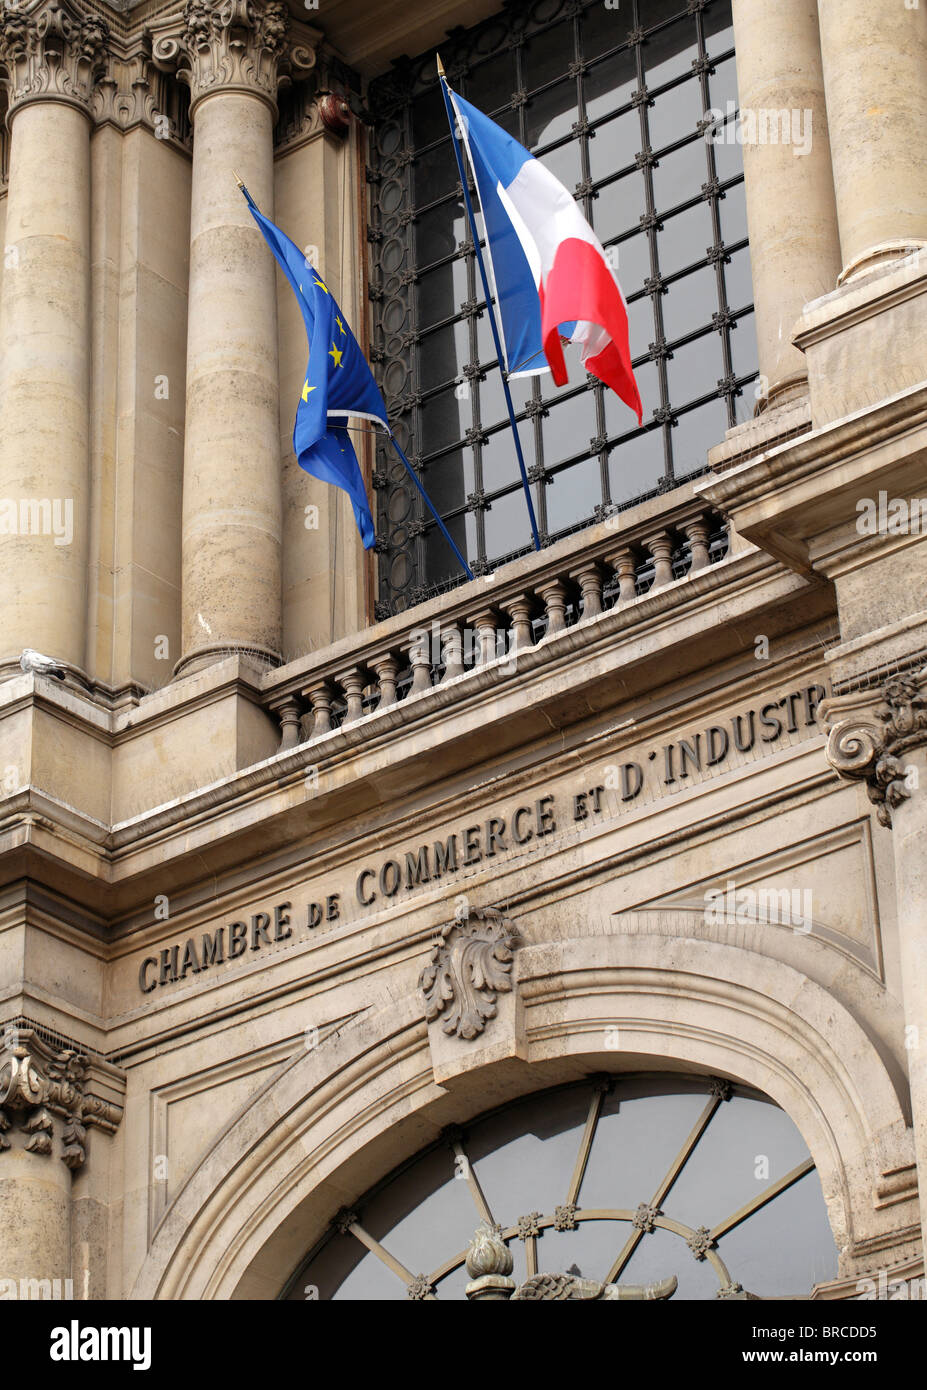 A Paris Chamber of Commerce building - Stock Image